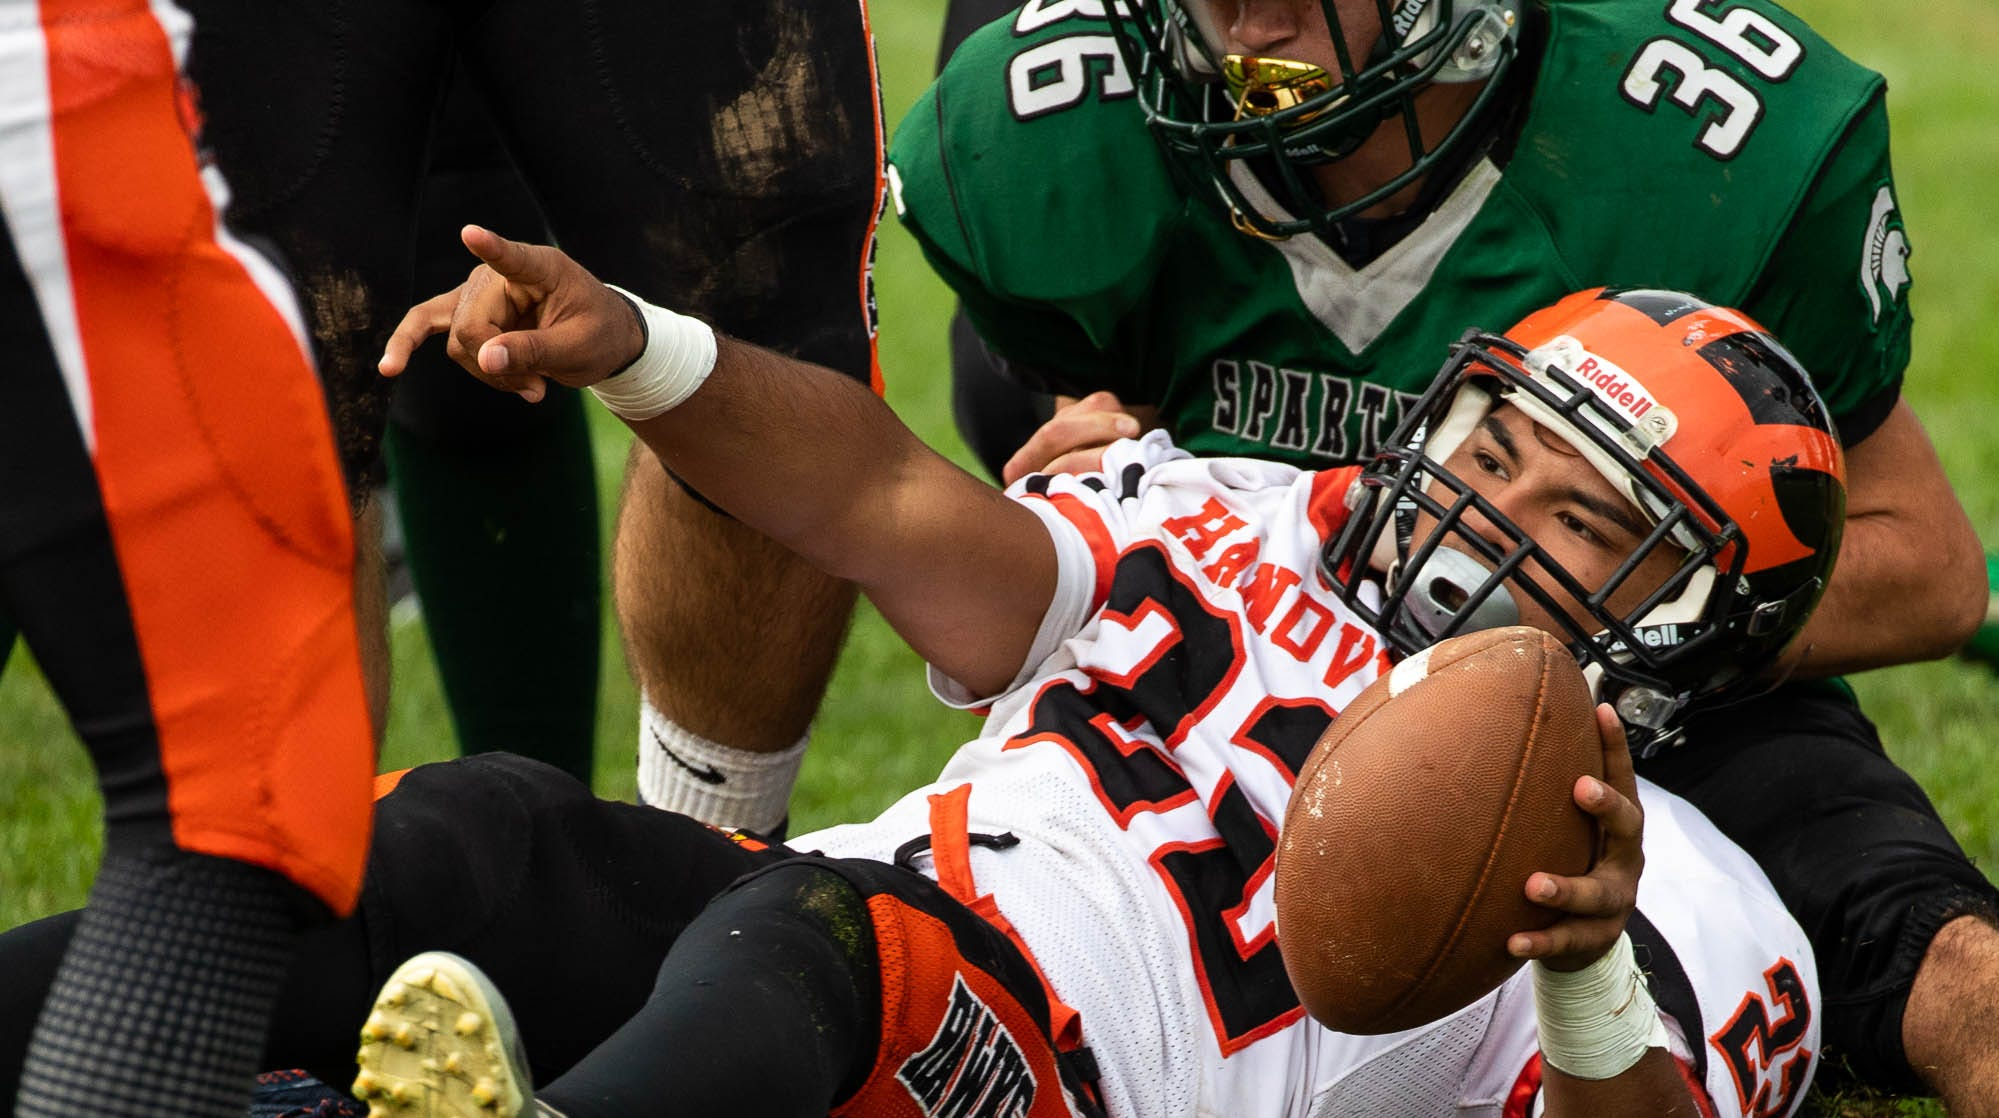 Hanover's Fabian Lara (22) is brought down on the goal line during a football game between Hanover and York Tech, Saturday, Sept. 22, 2018, at the York County School of Technology in York Township.